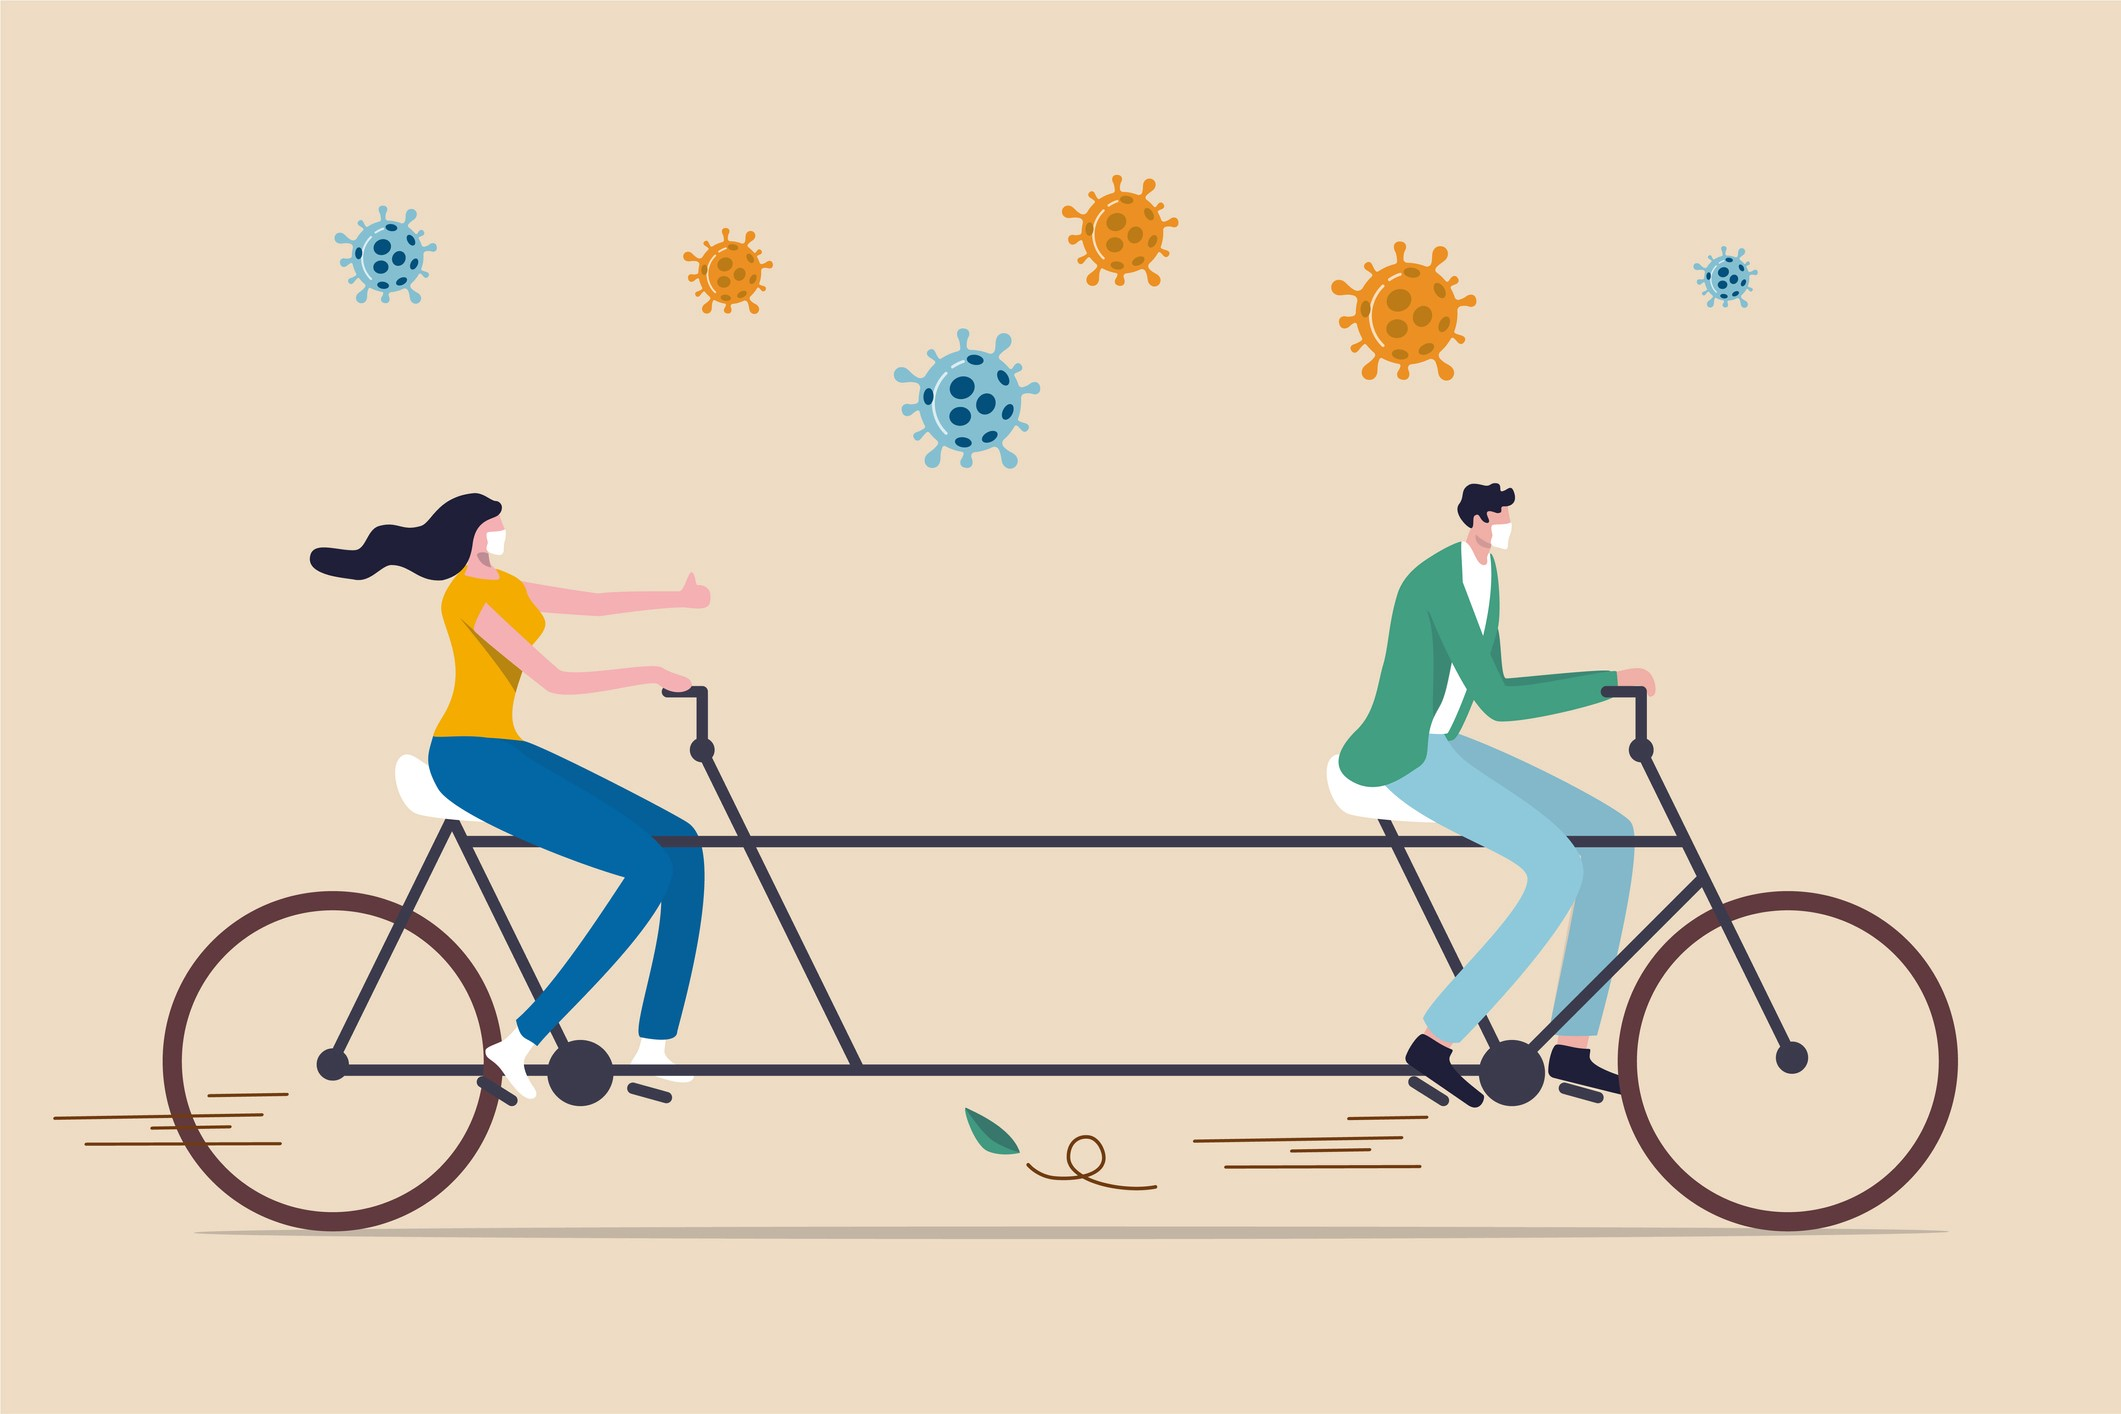 Two people wearing face masks, riding a very long tandem bicycle. Coronavirus molecules float above them. Illustration.